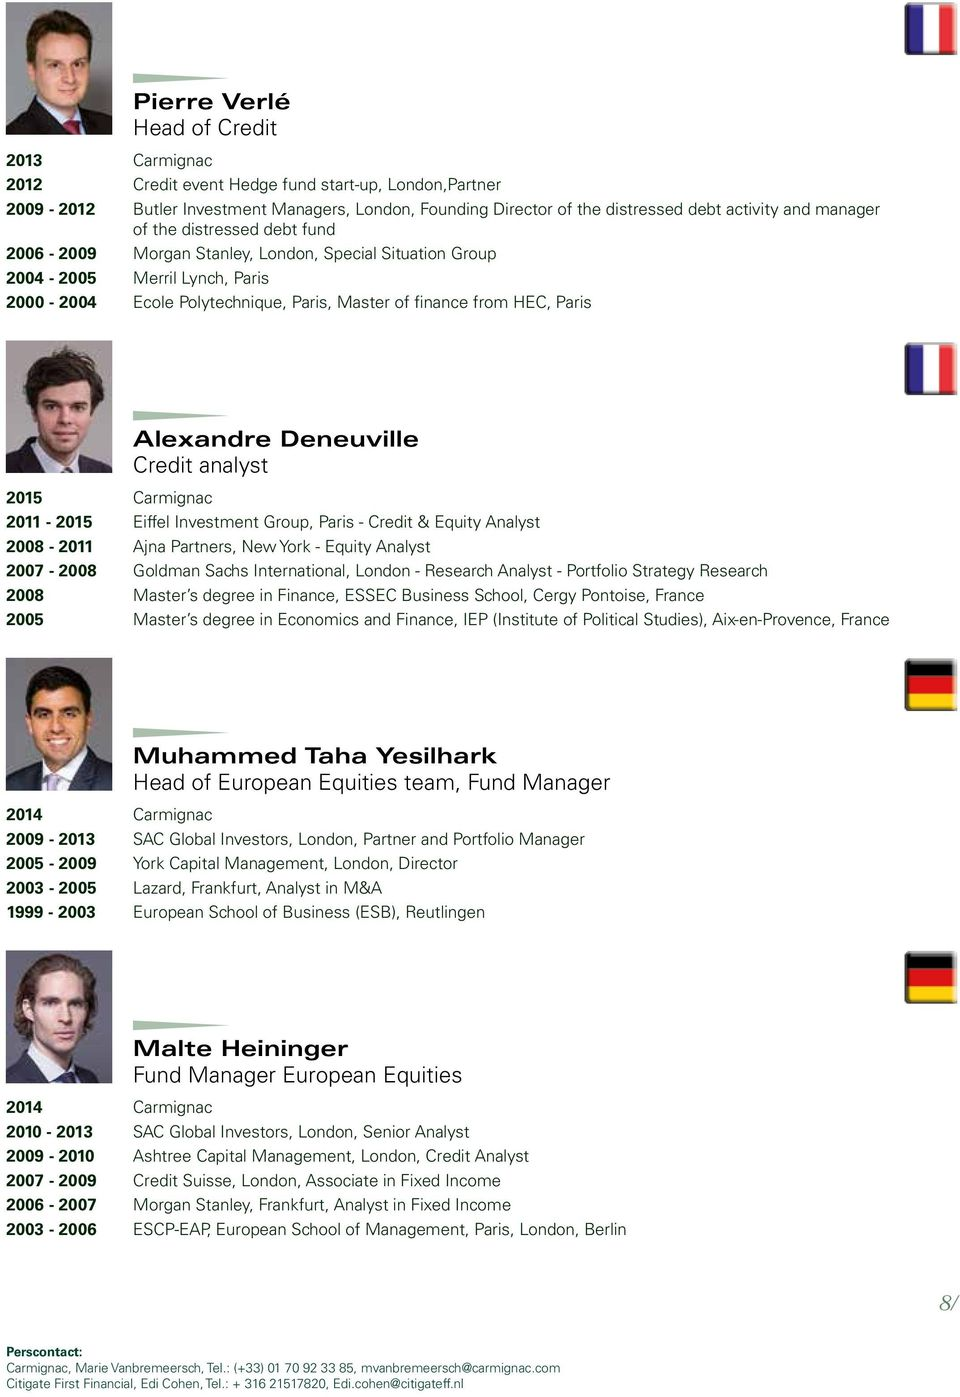 Alexandre Deneuville Credit analyst 2015 Carmignac 2011-2015 Eiffel Investment Group, Paris - Credit & Equity Analyst 2008-2011 Ajna Partners, New York - Equity Analyst 2007-2008 Goldman Sachs